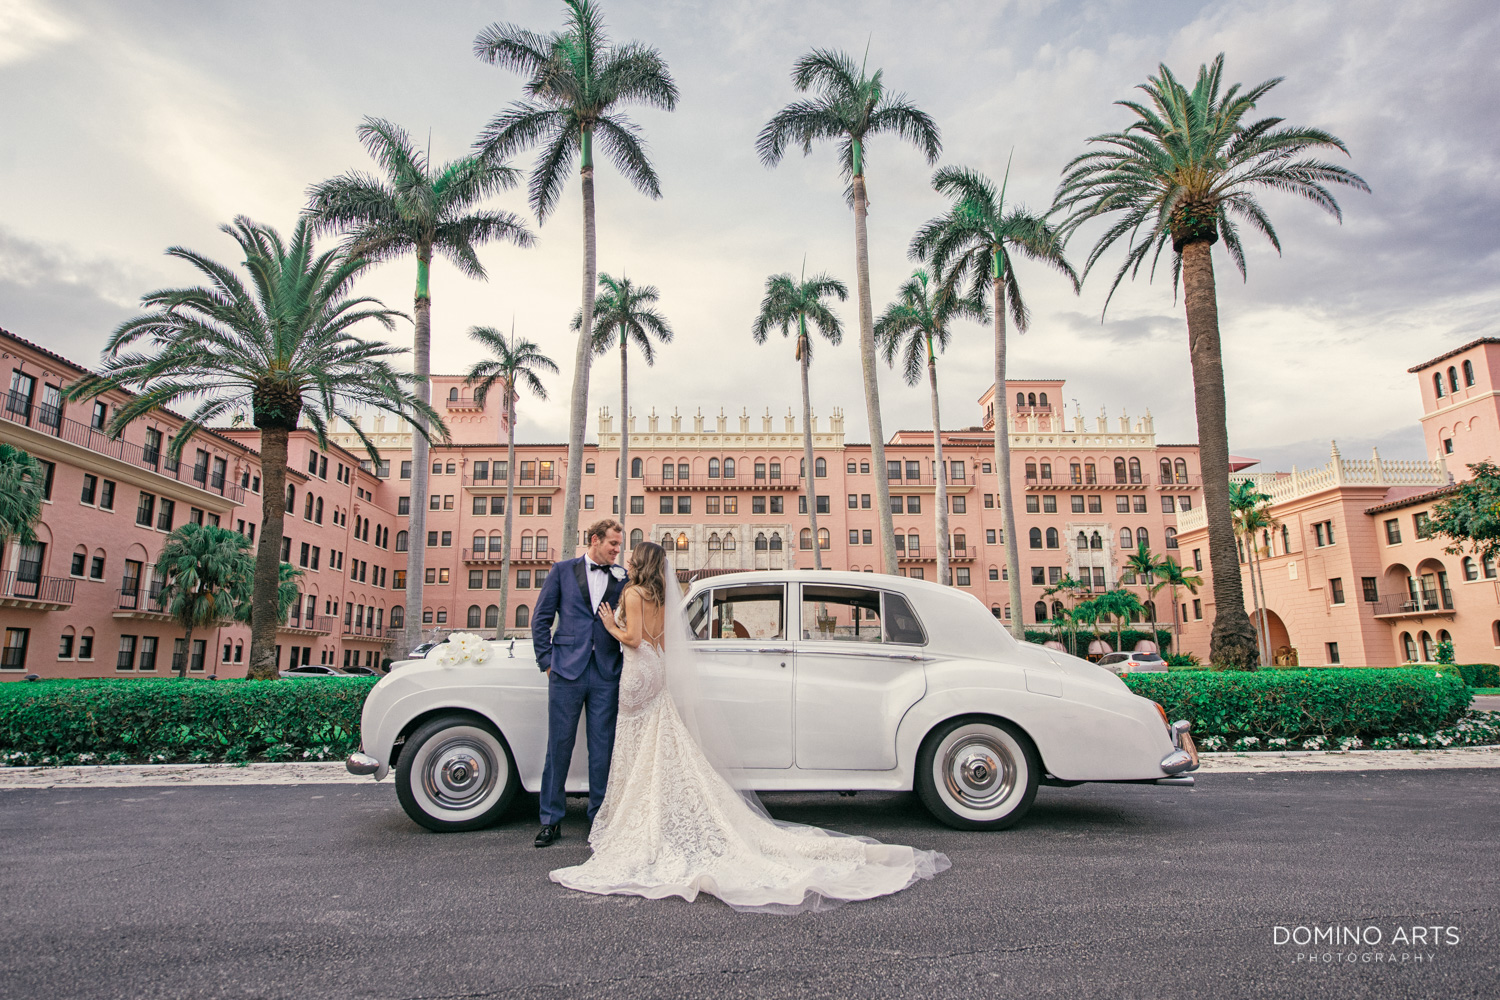 Artistic wedding picture of bride and groom at Boca Raton Resort